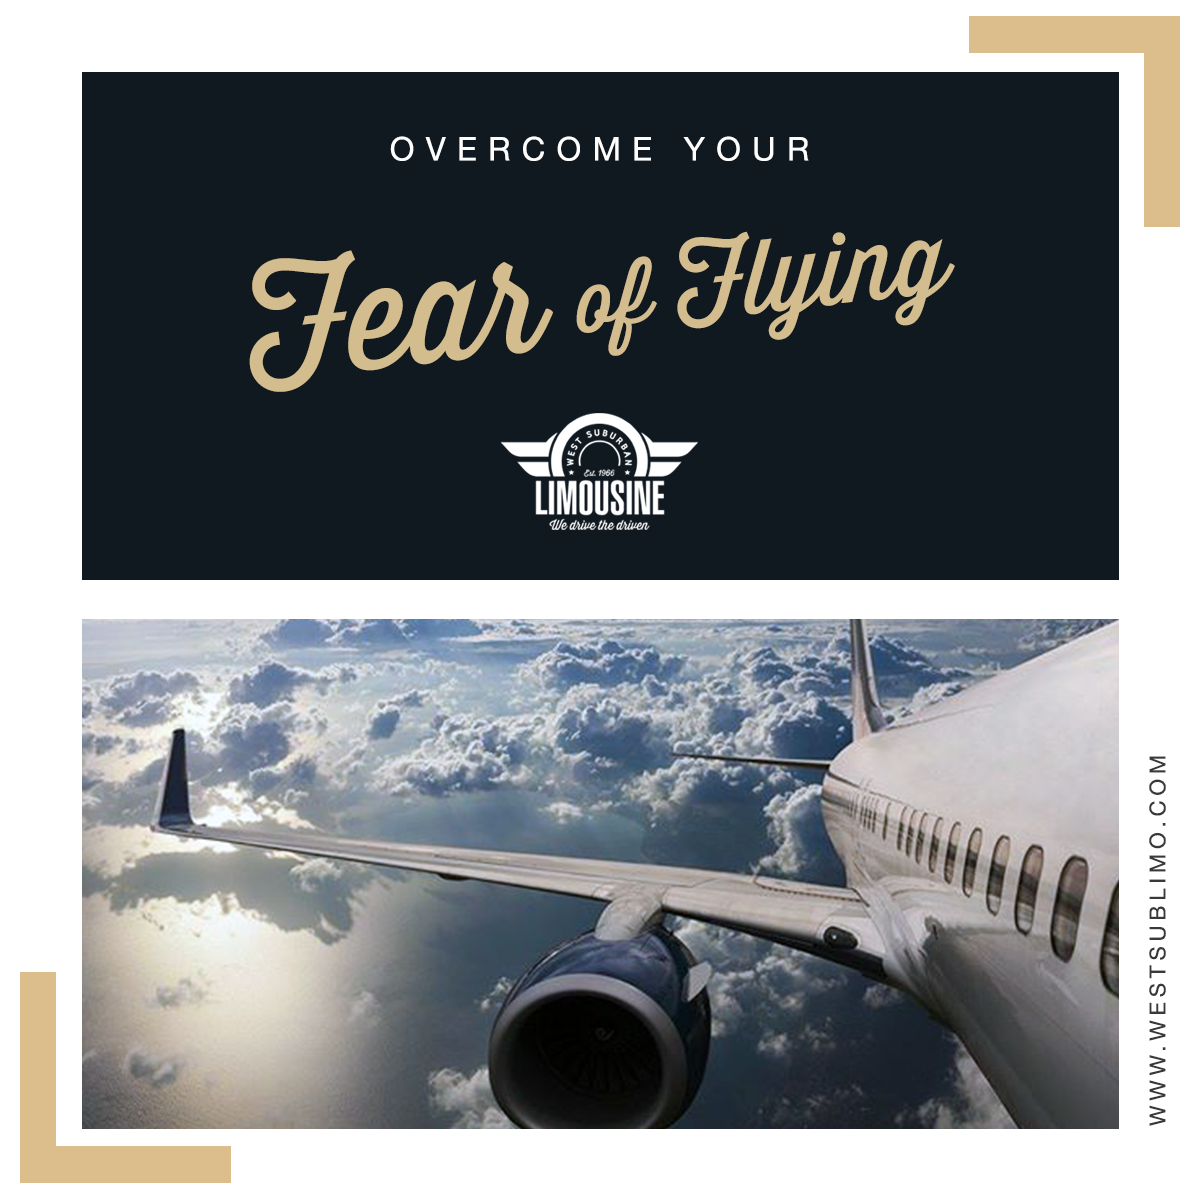 steps on how to overcome your fear of flying